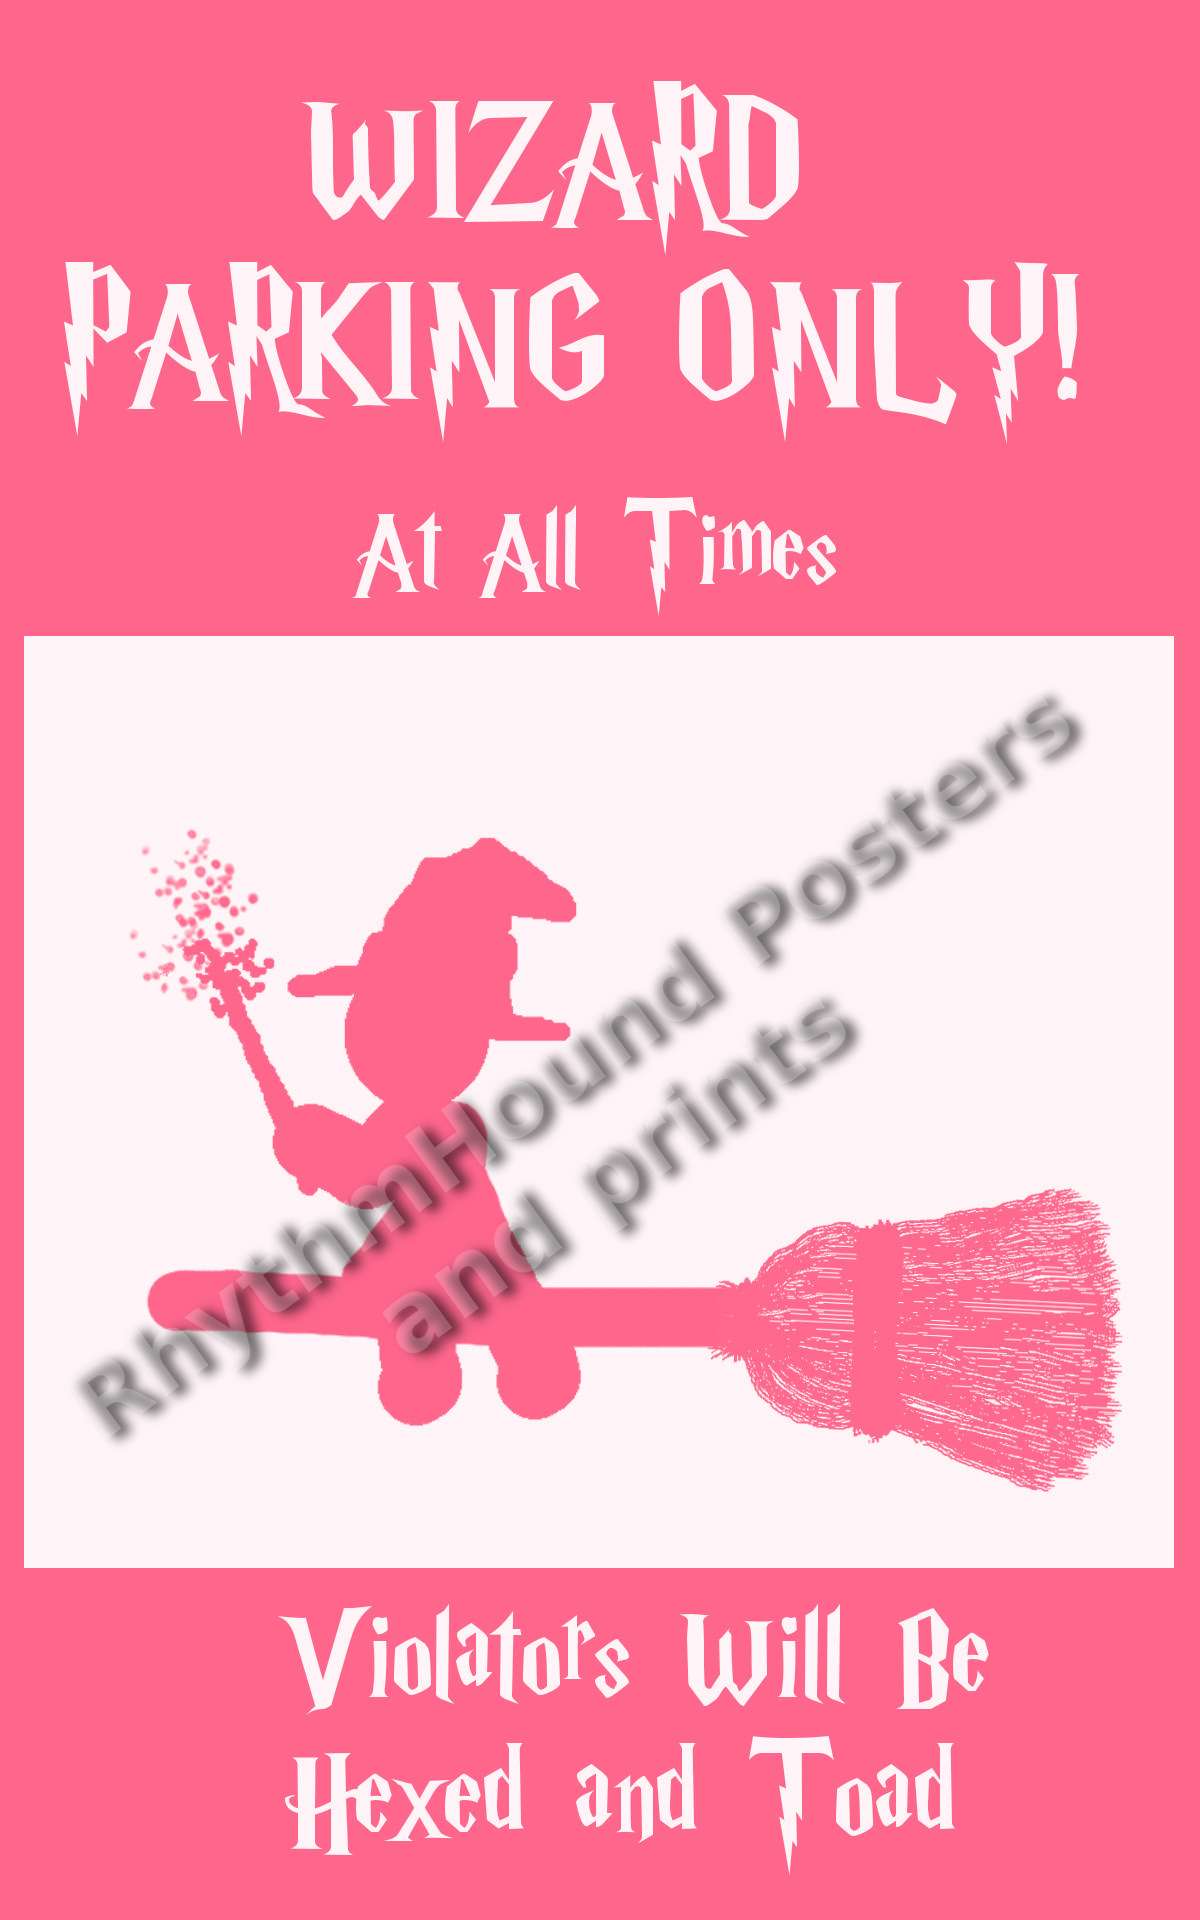 wizard parking only pink rhythmhound custom prints and posters